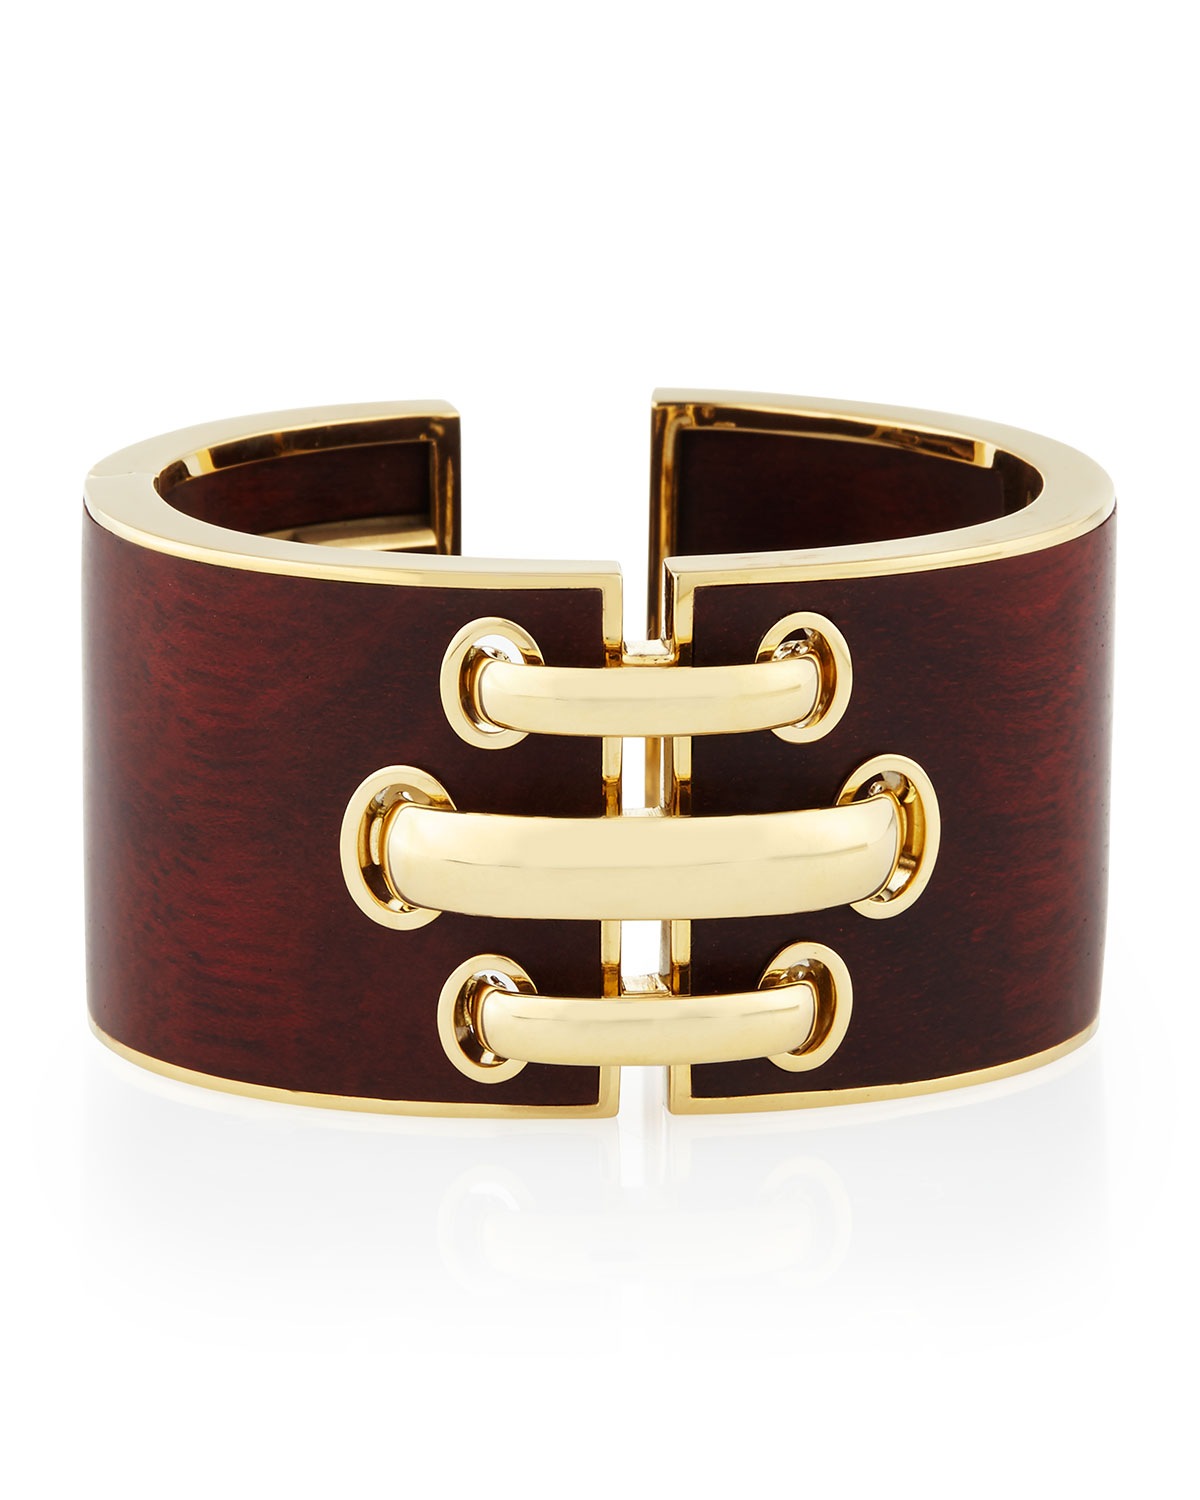 David Webb 18k Gold Bloodwood Shoelace Cuff Bracelet